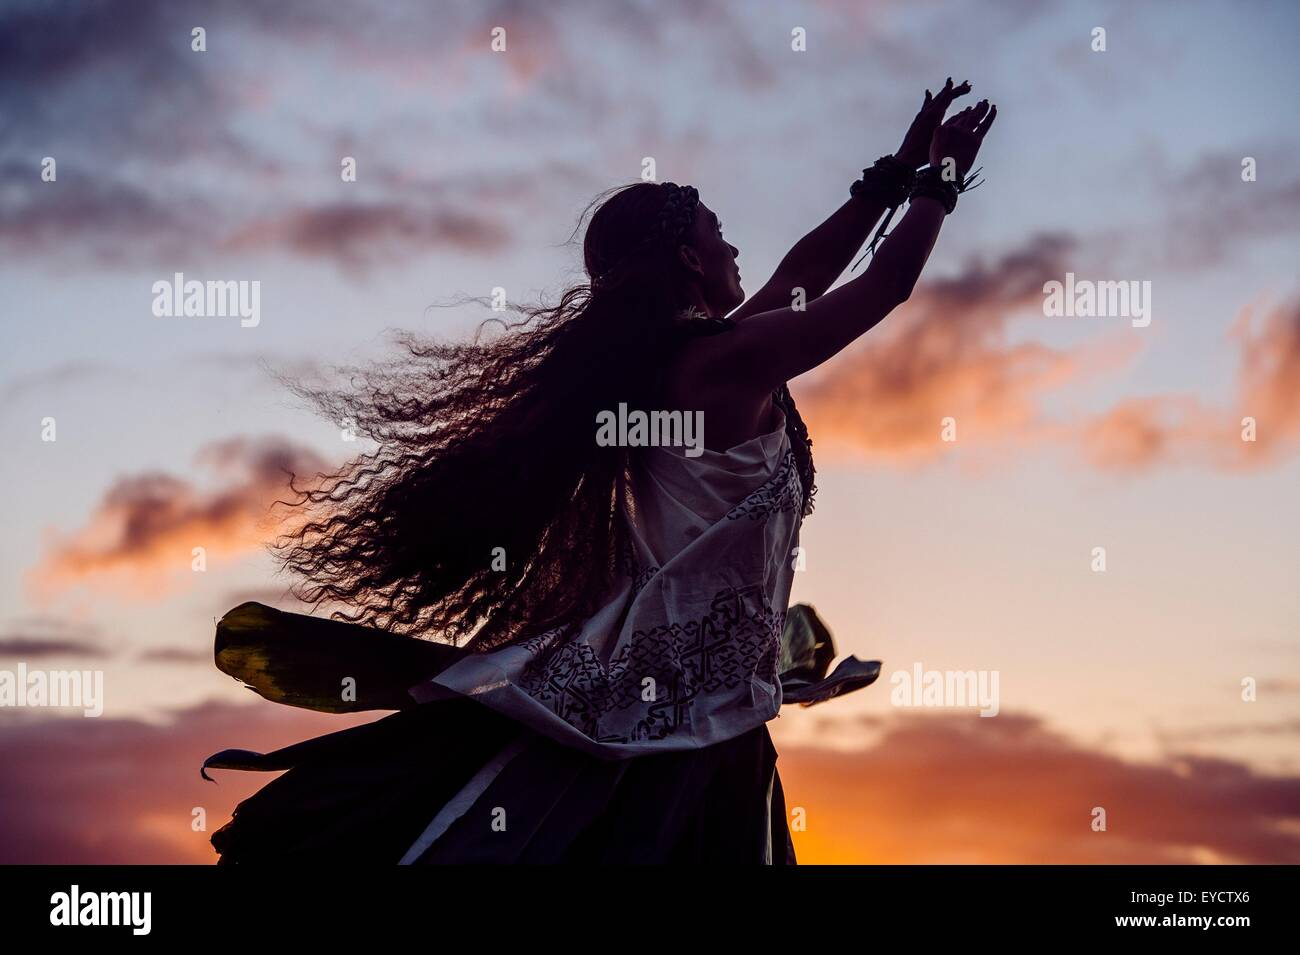 Silhouetted woman hula dancing wearing traditional costume at dusk, Maui, Hawaii, USA - Stock Image